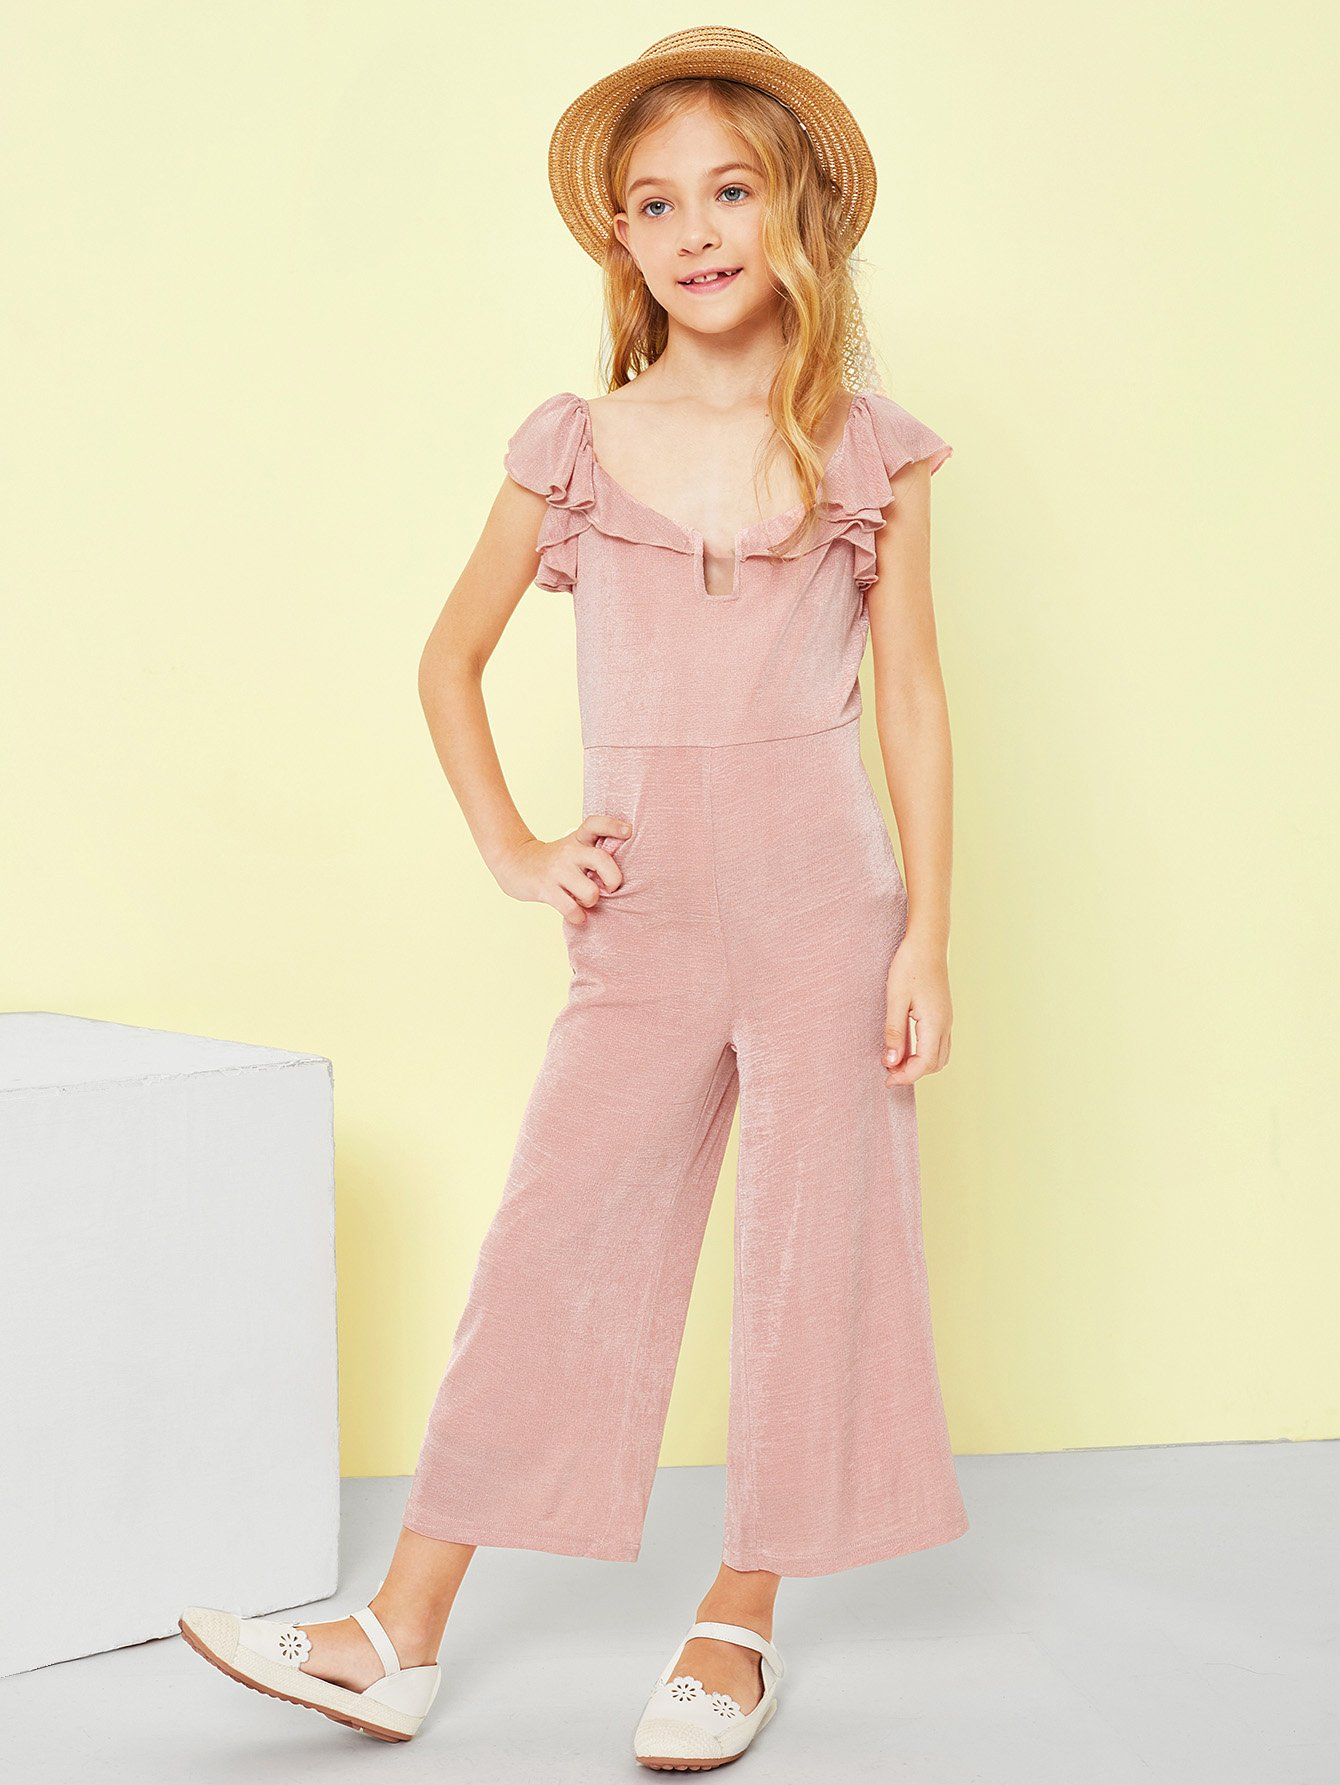 Girls V-Neck Solid Ruffle Trim Jumpsuit choker neck embroidered ruffle trim jumpsuit